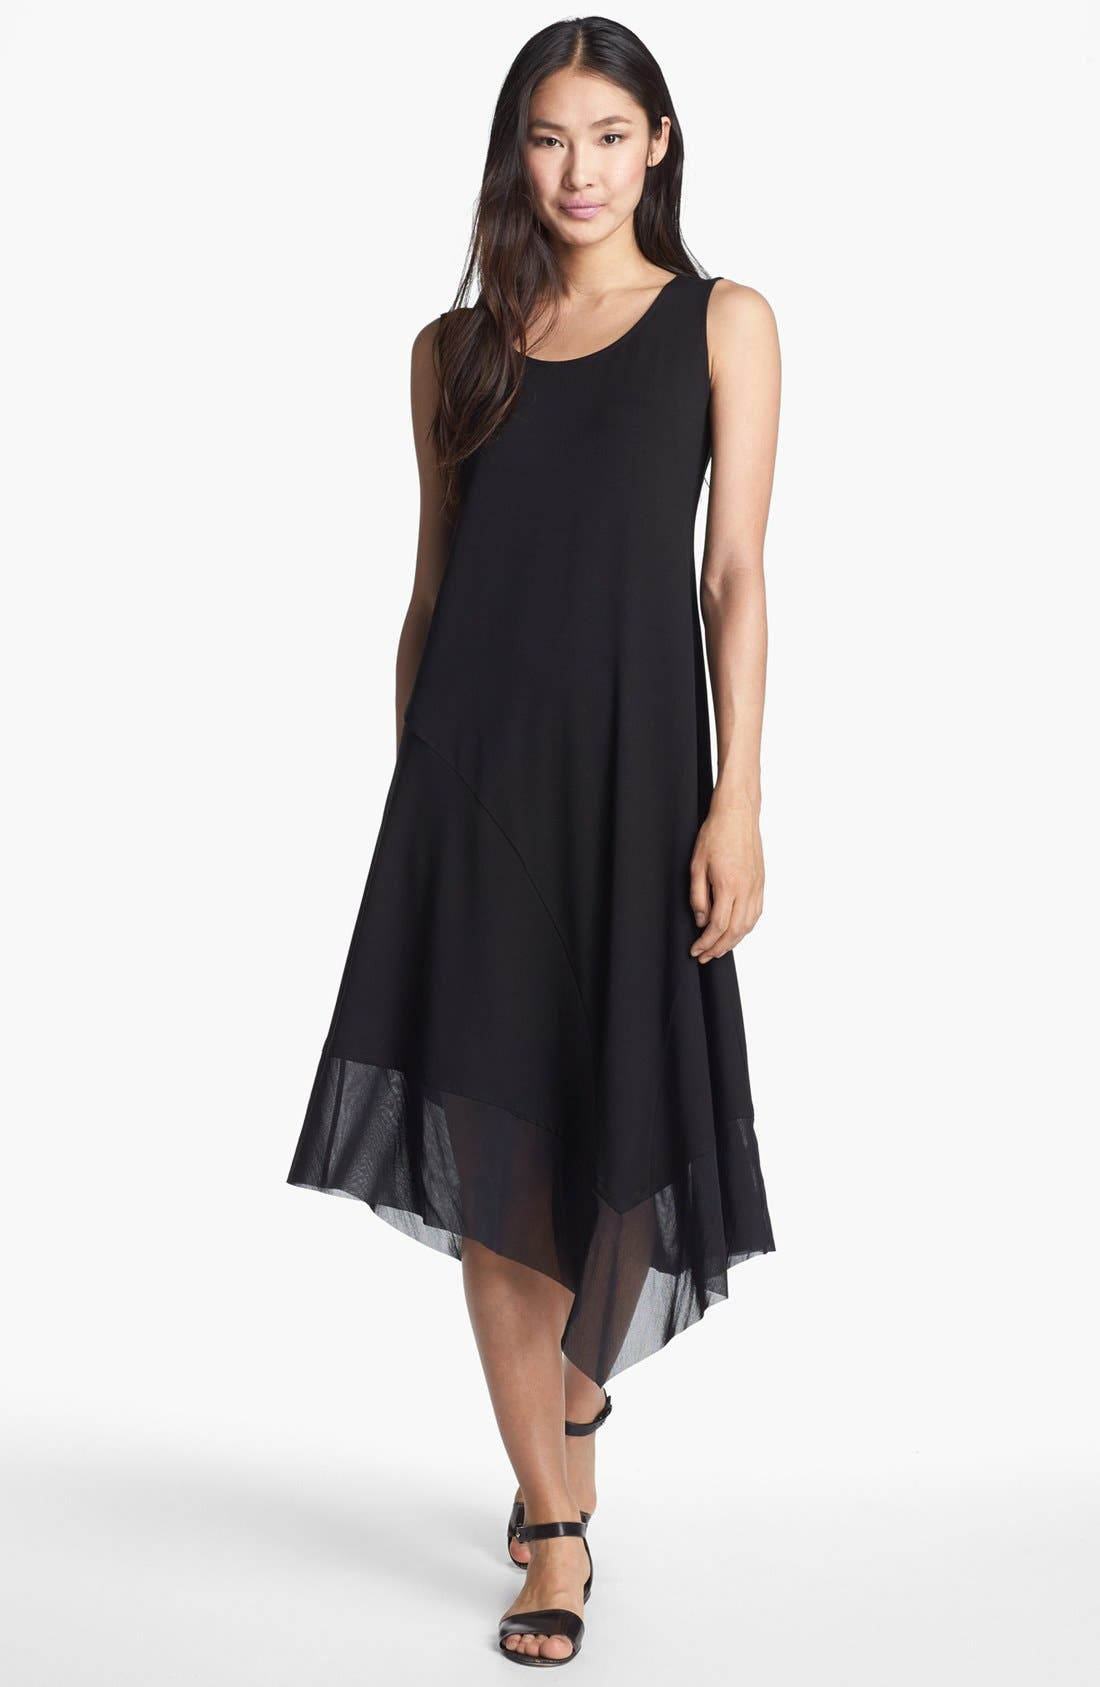 EILEEN FISHER Scoop Neck Asymmetrical Dress, Main, color, 001